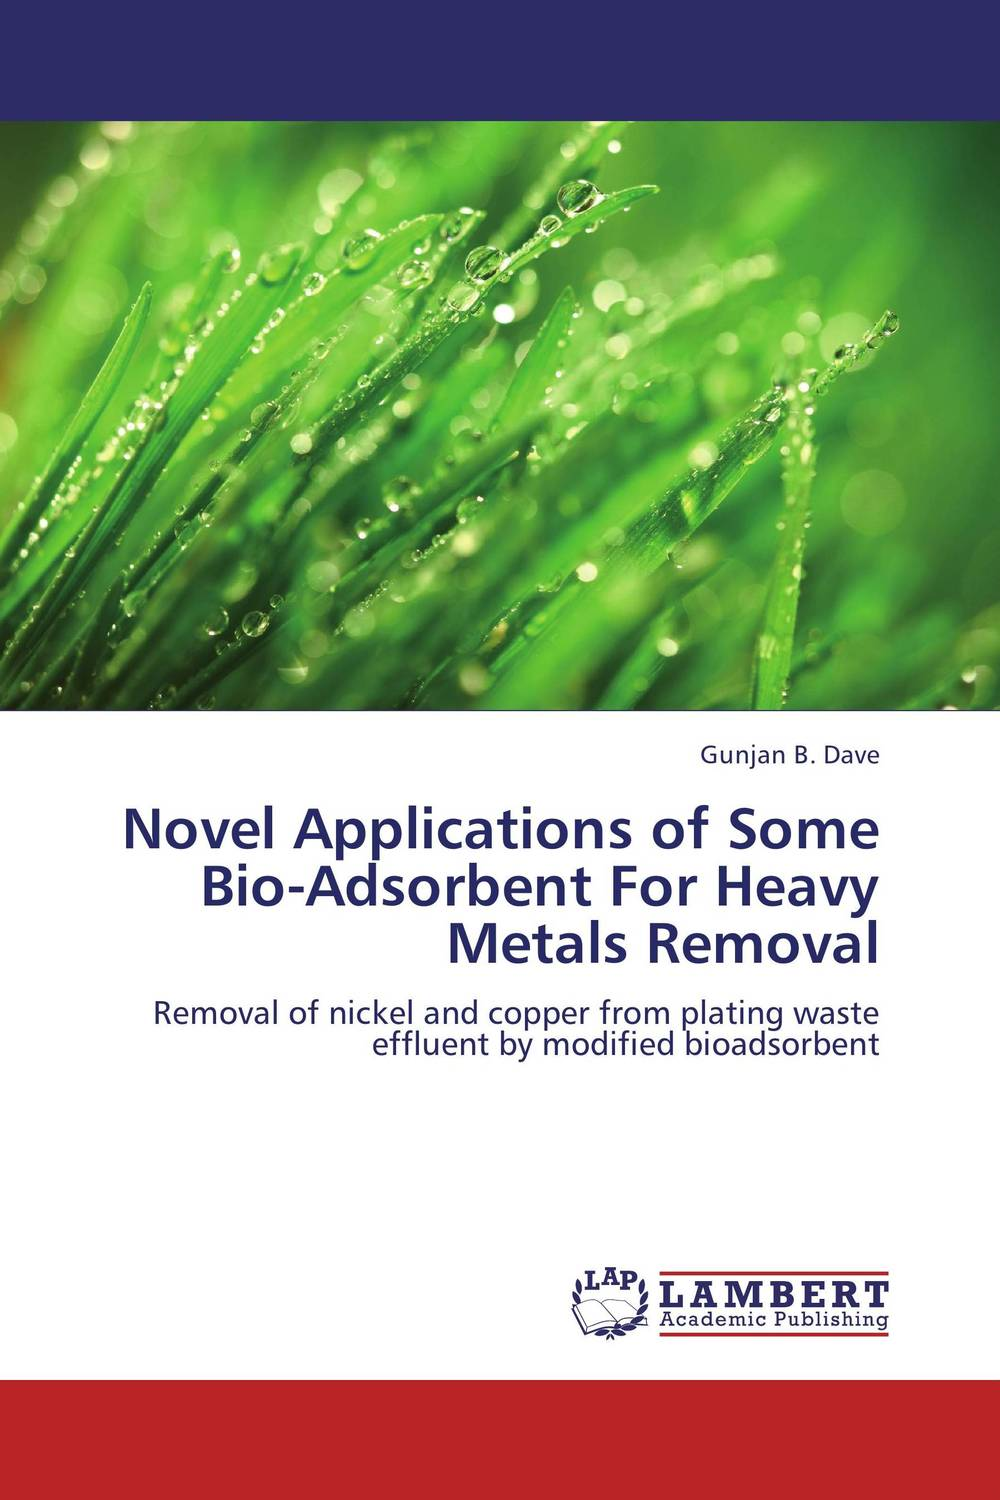 Novel Applications of Some Bio-Adsorbent  For Heavy Metals Removal novel applications of some bio adsorbent for heavy metals removal